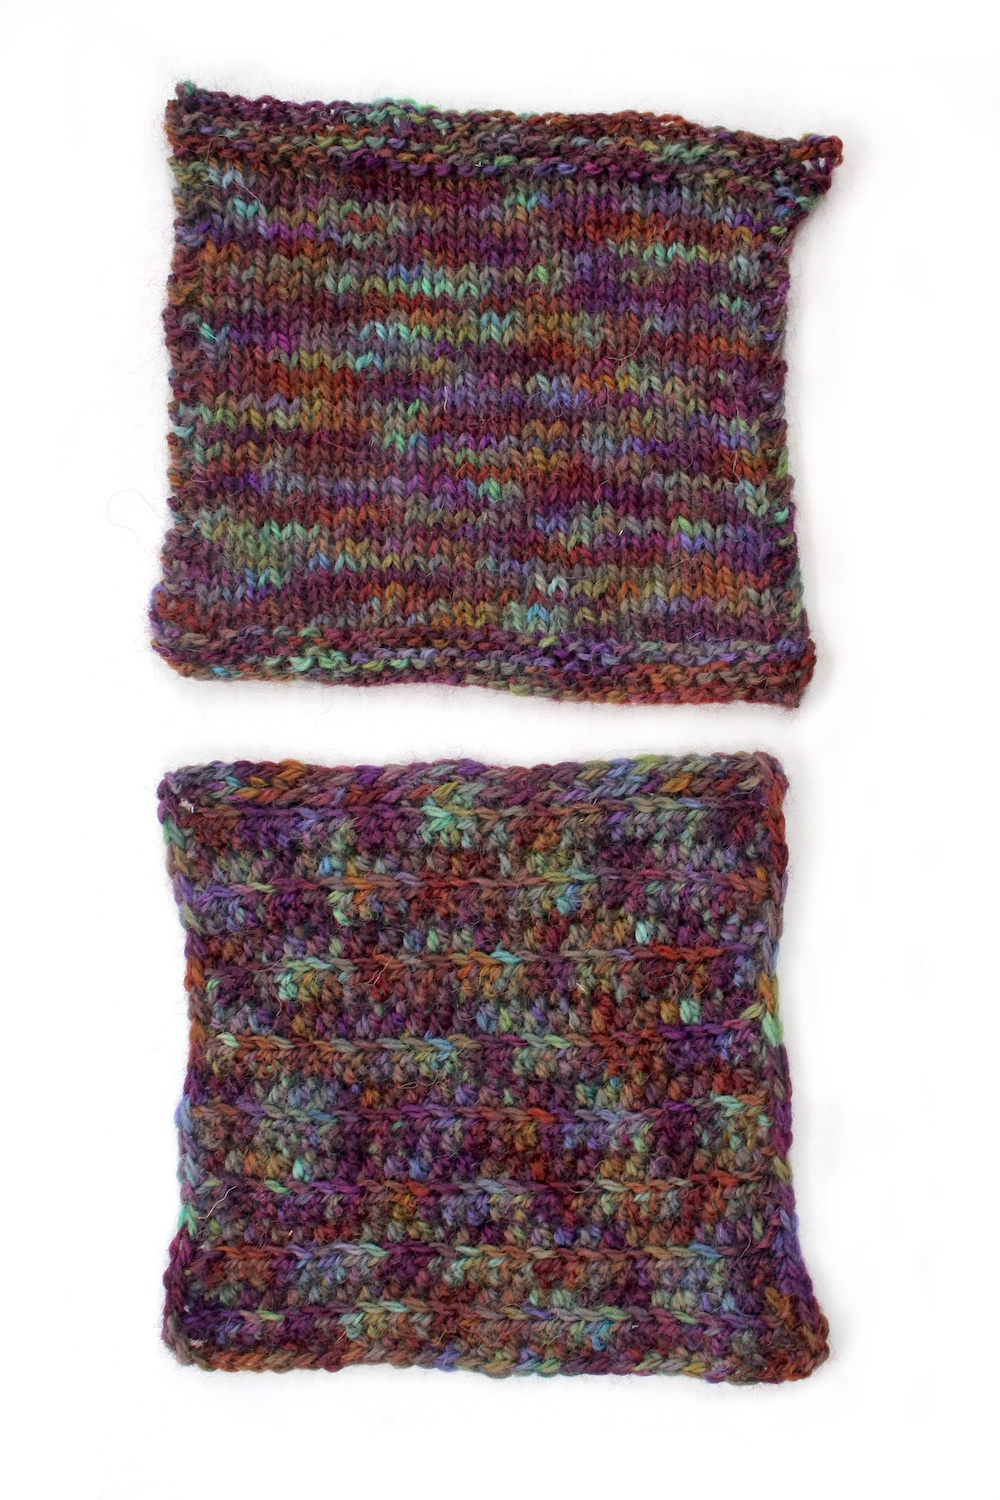 Knit and crochet swatches of the Excalibur colourway